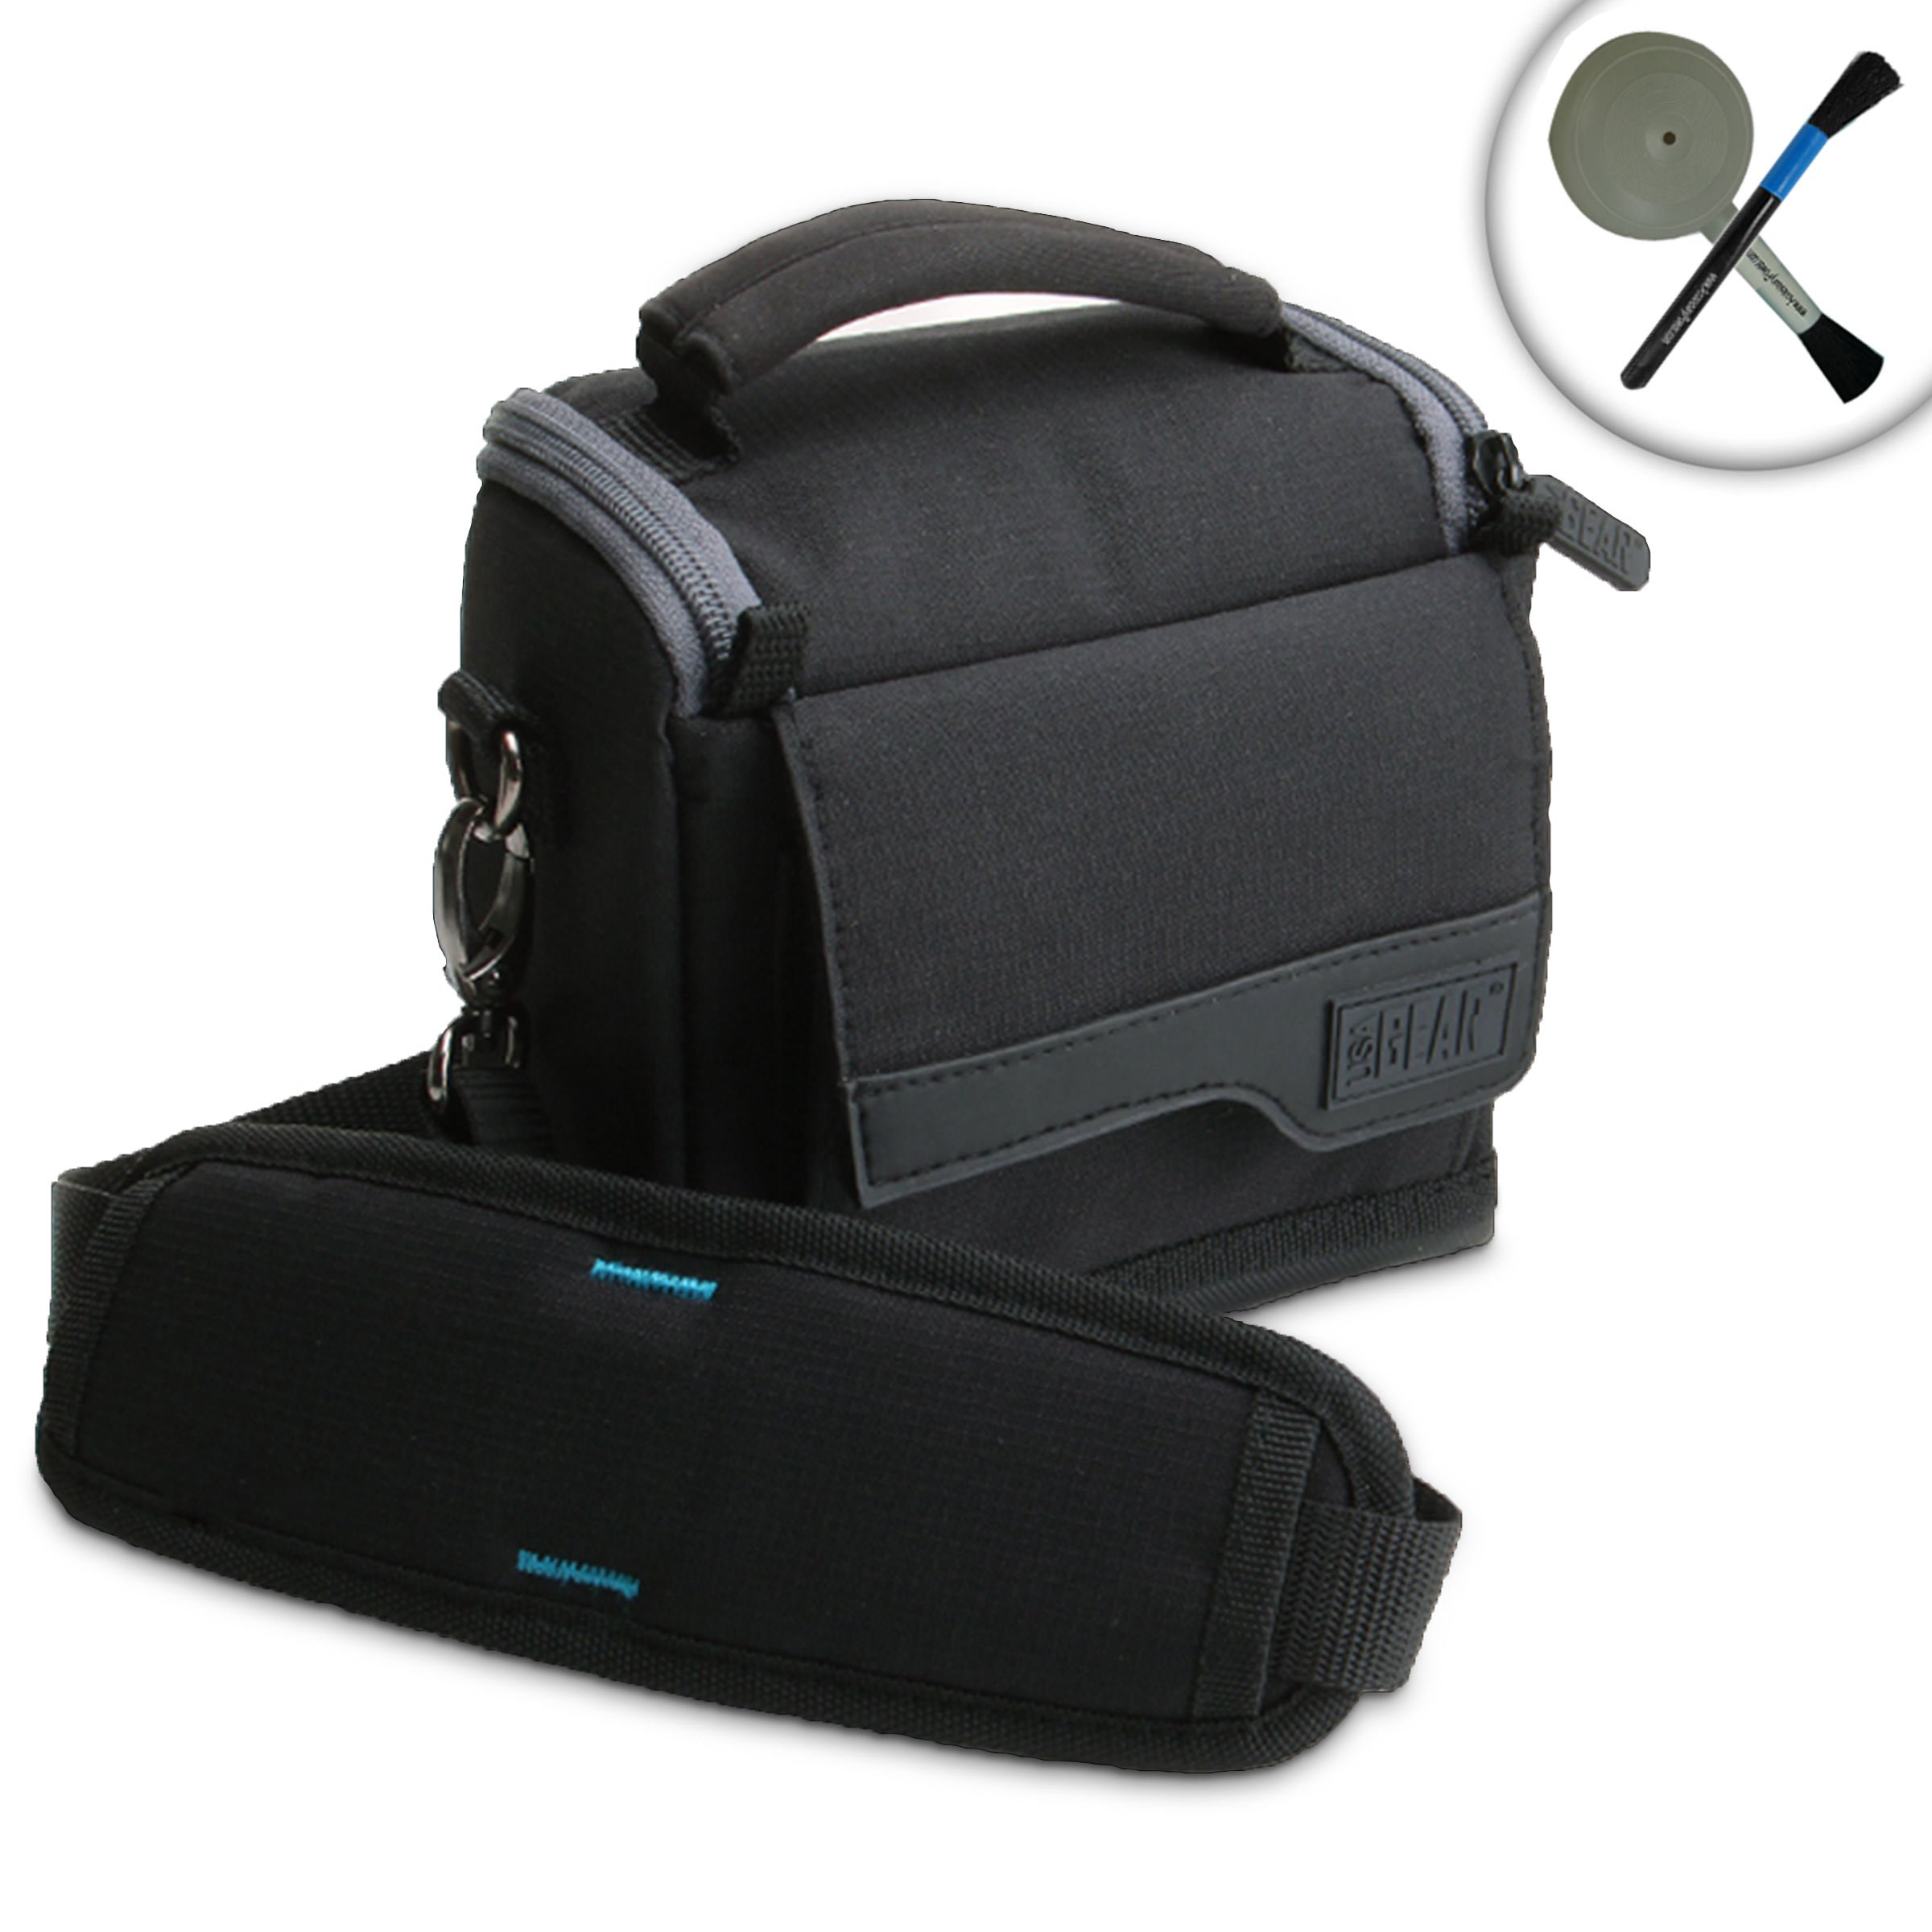 For Nintendo 2DS Travel Case Bag with Carrying Strap , Handle and Storage for Accessories including Chargers , Games, Headphones and More